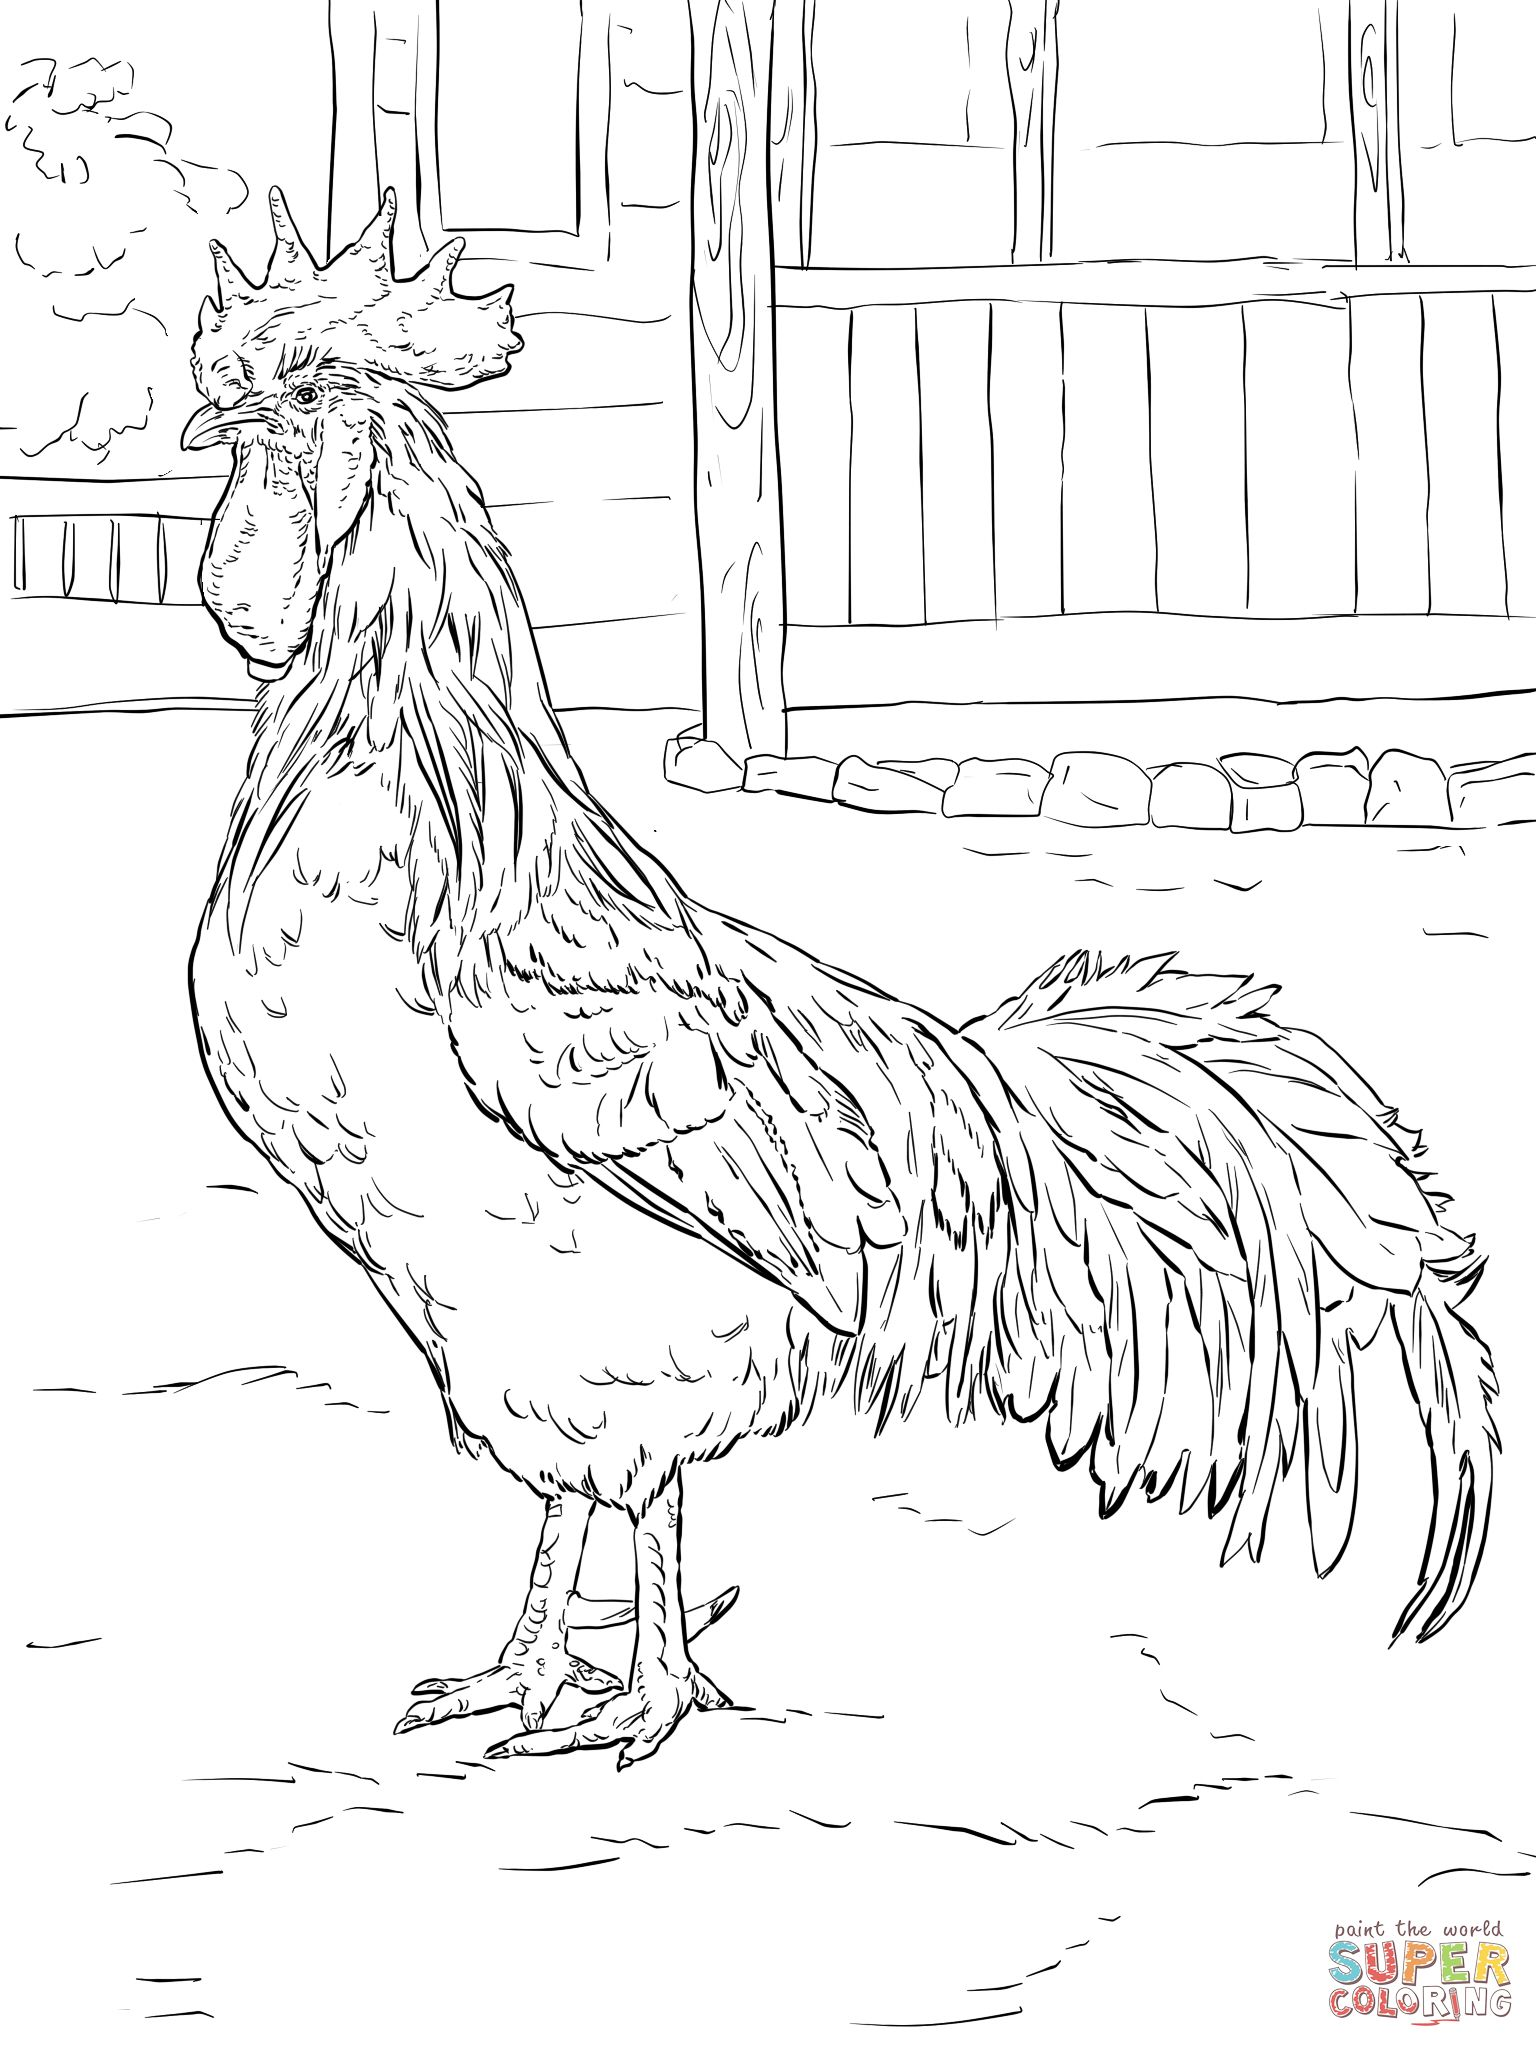 Brown Leghorn Rooster Coloring Page Coloring Pictures Coloring Pages Animal Coloring Pages